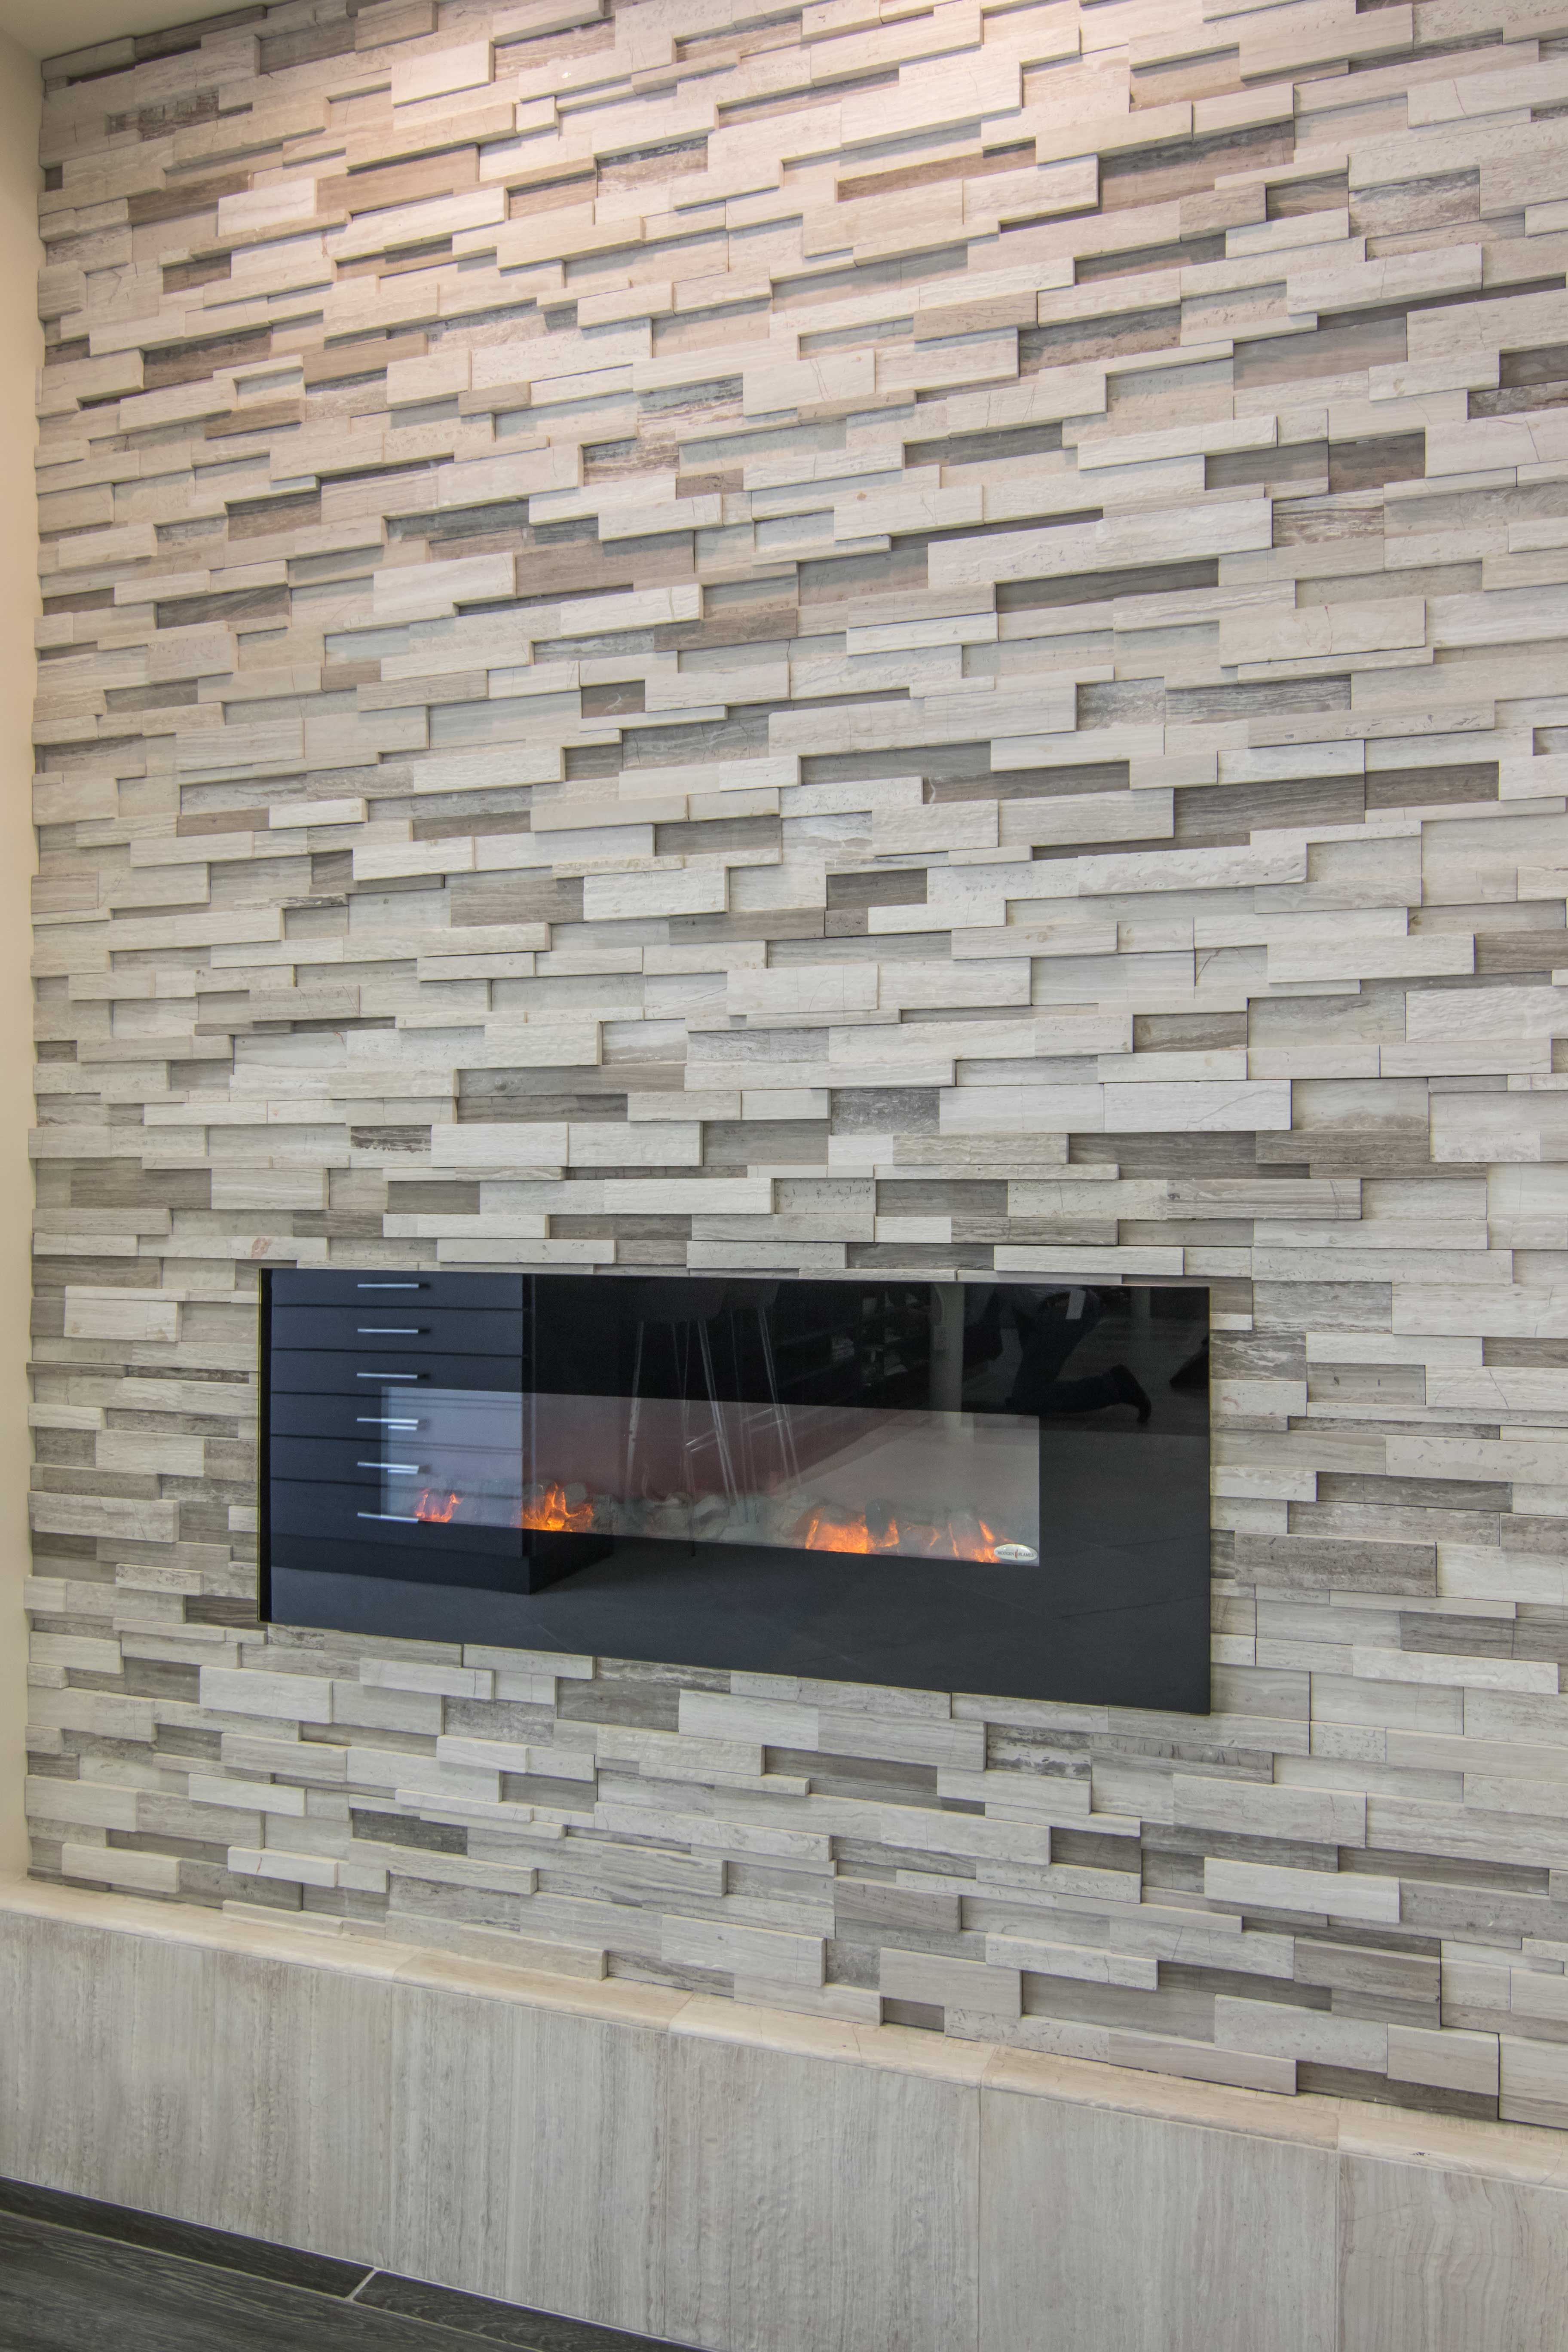 cream hue fireplace tile legno architectural limestone wall tile